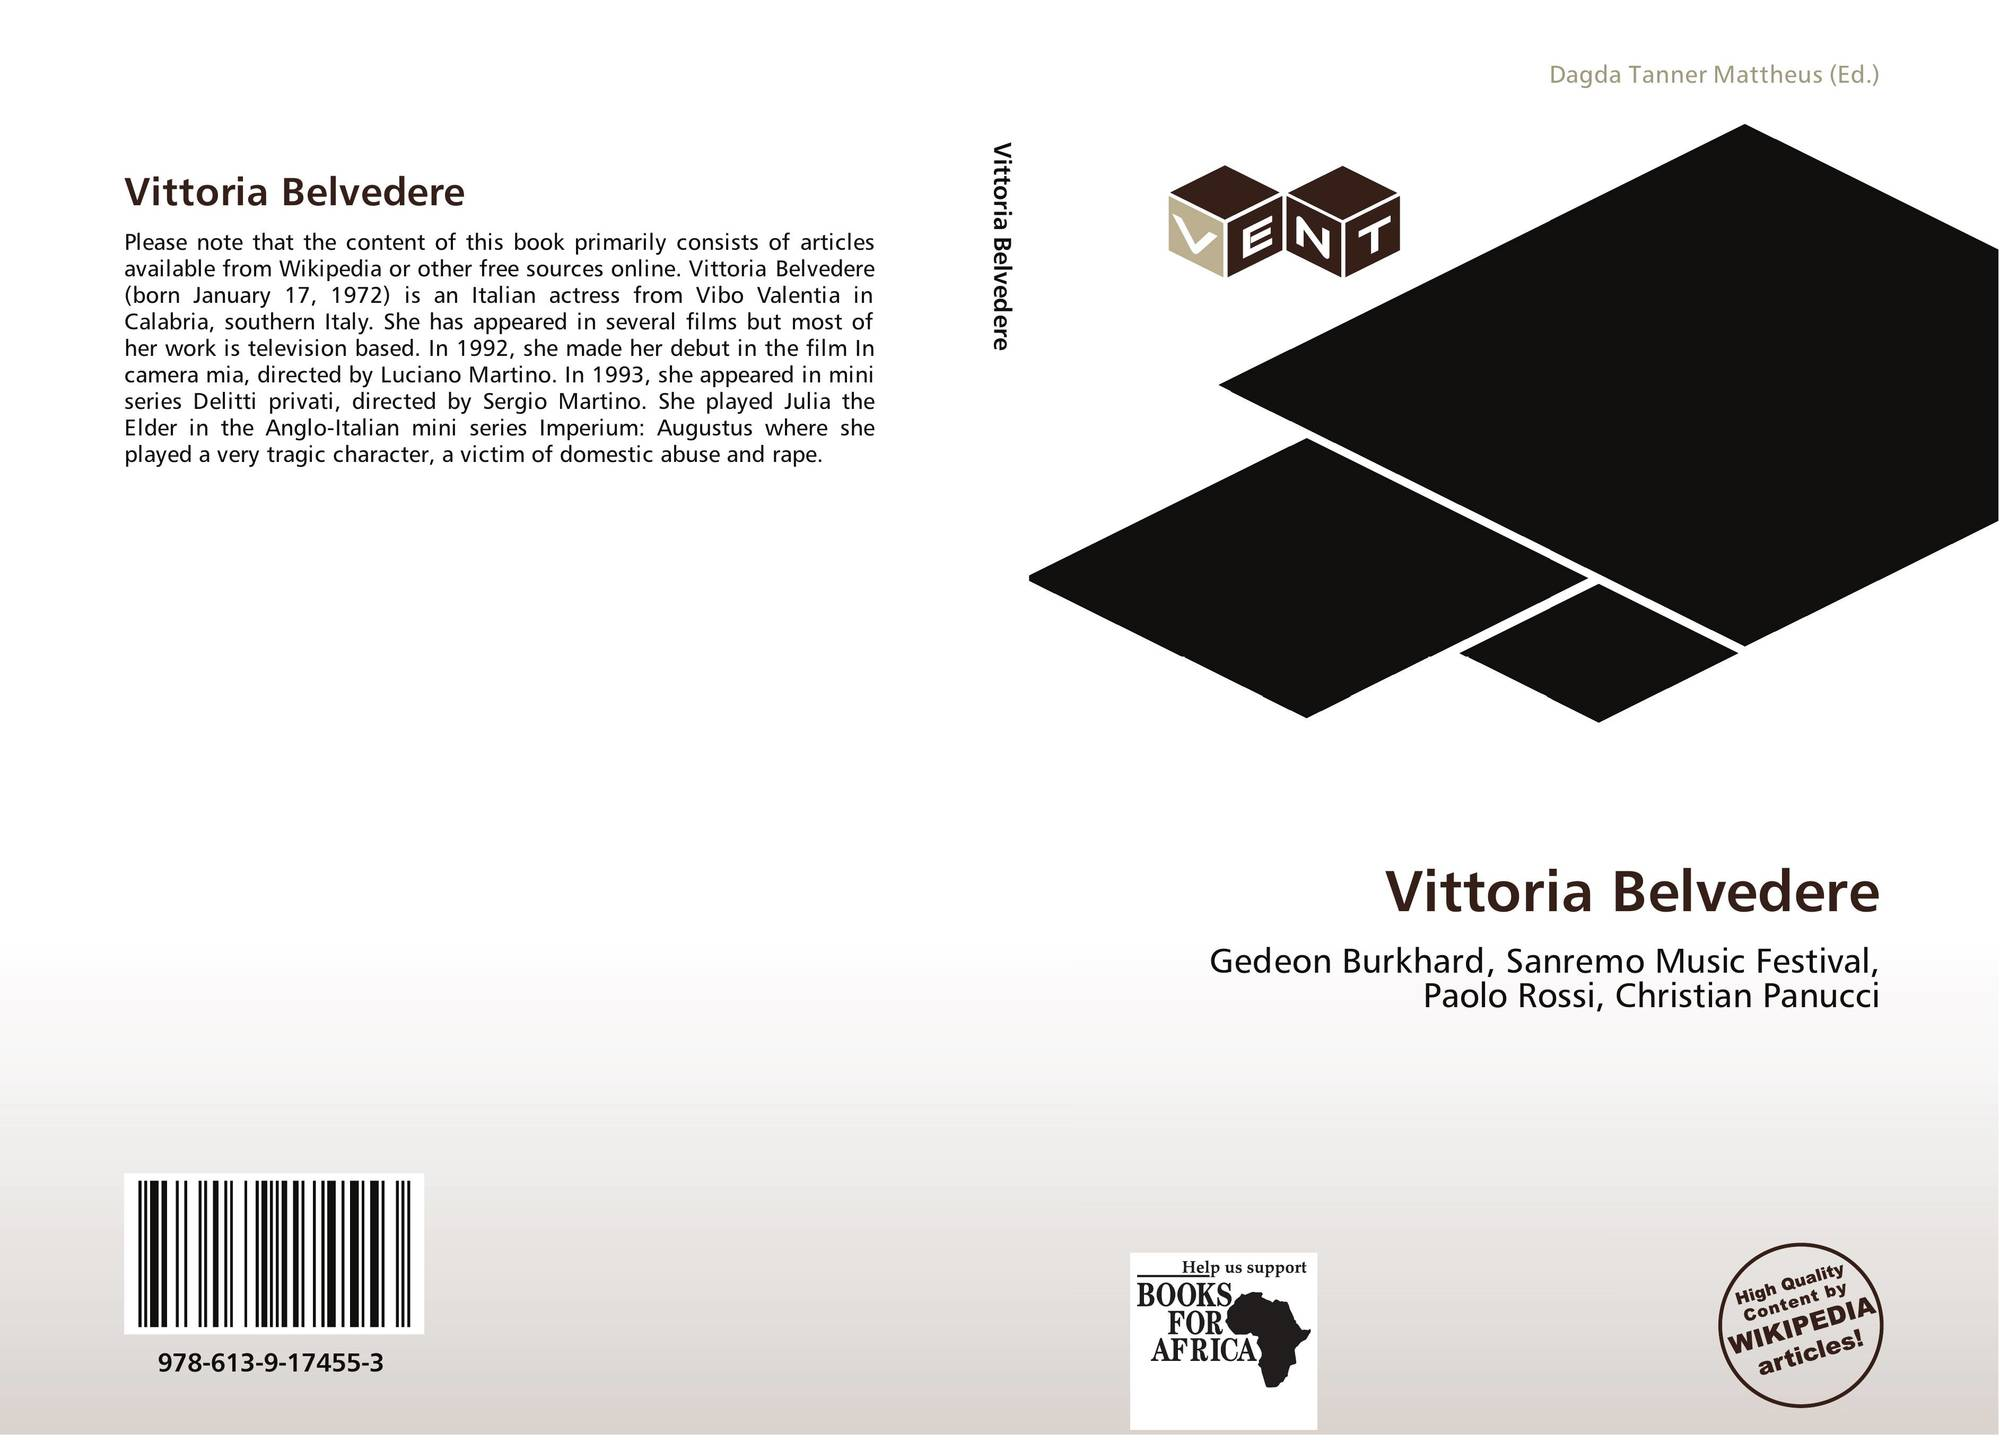 Vittoria Belvedere (born 1972) Vittoria Belvedere (born 1972) new images